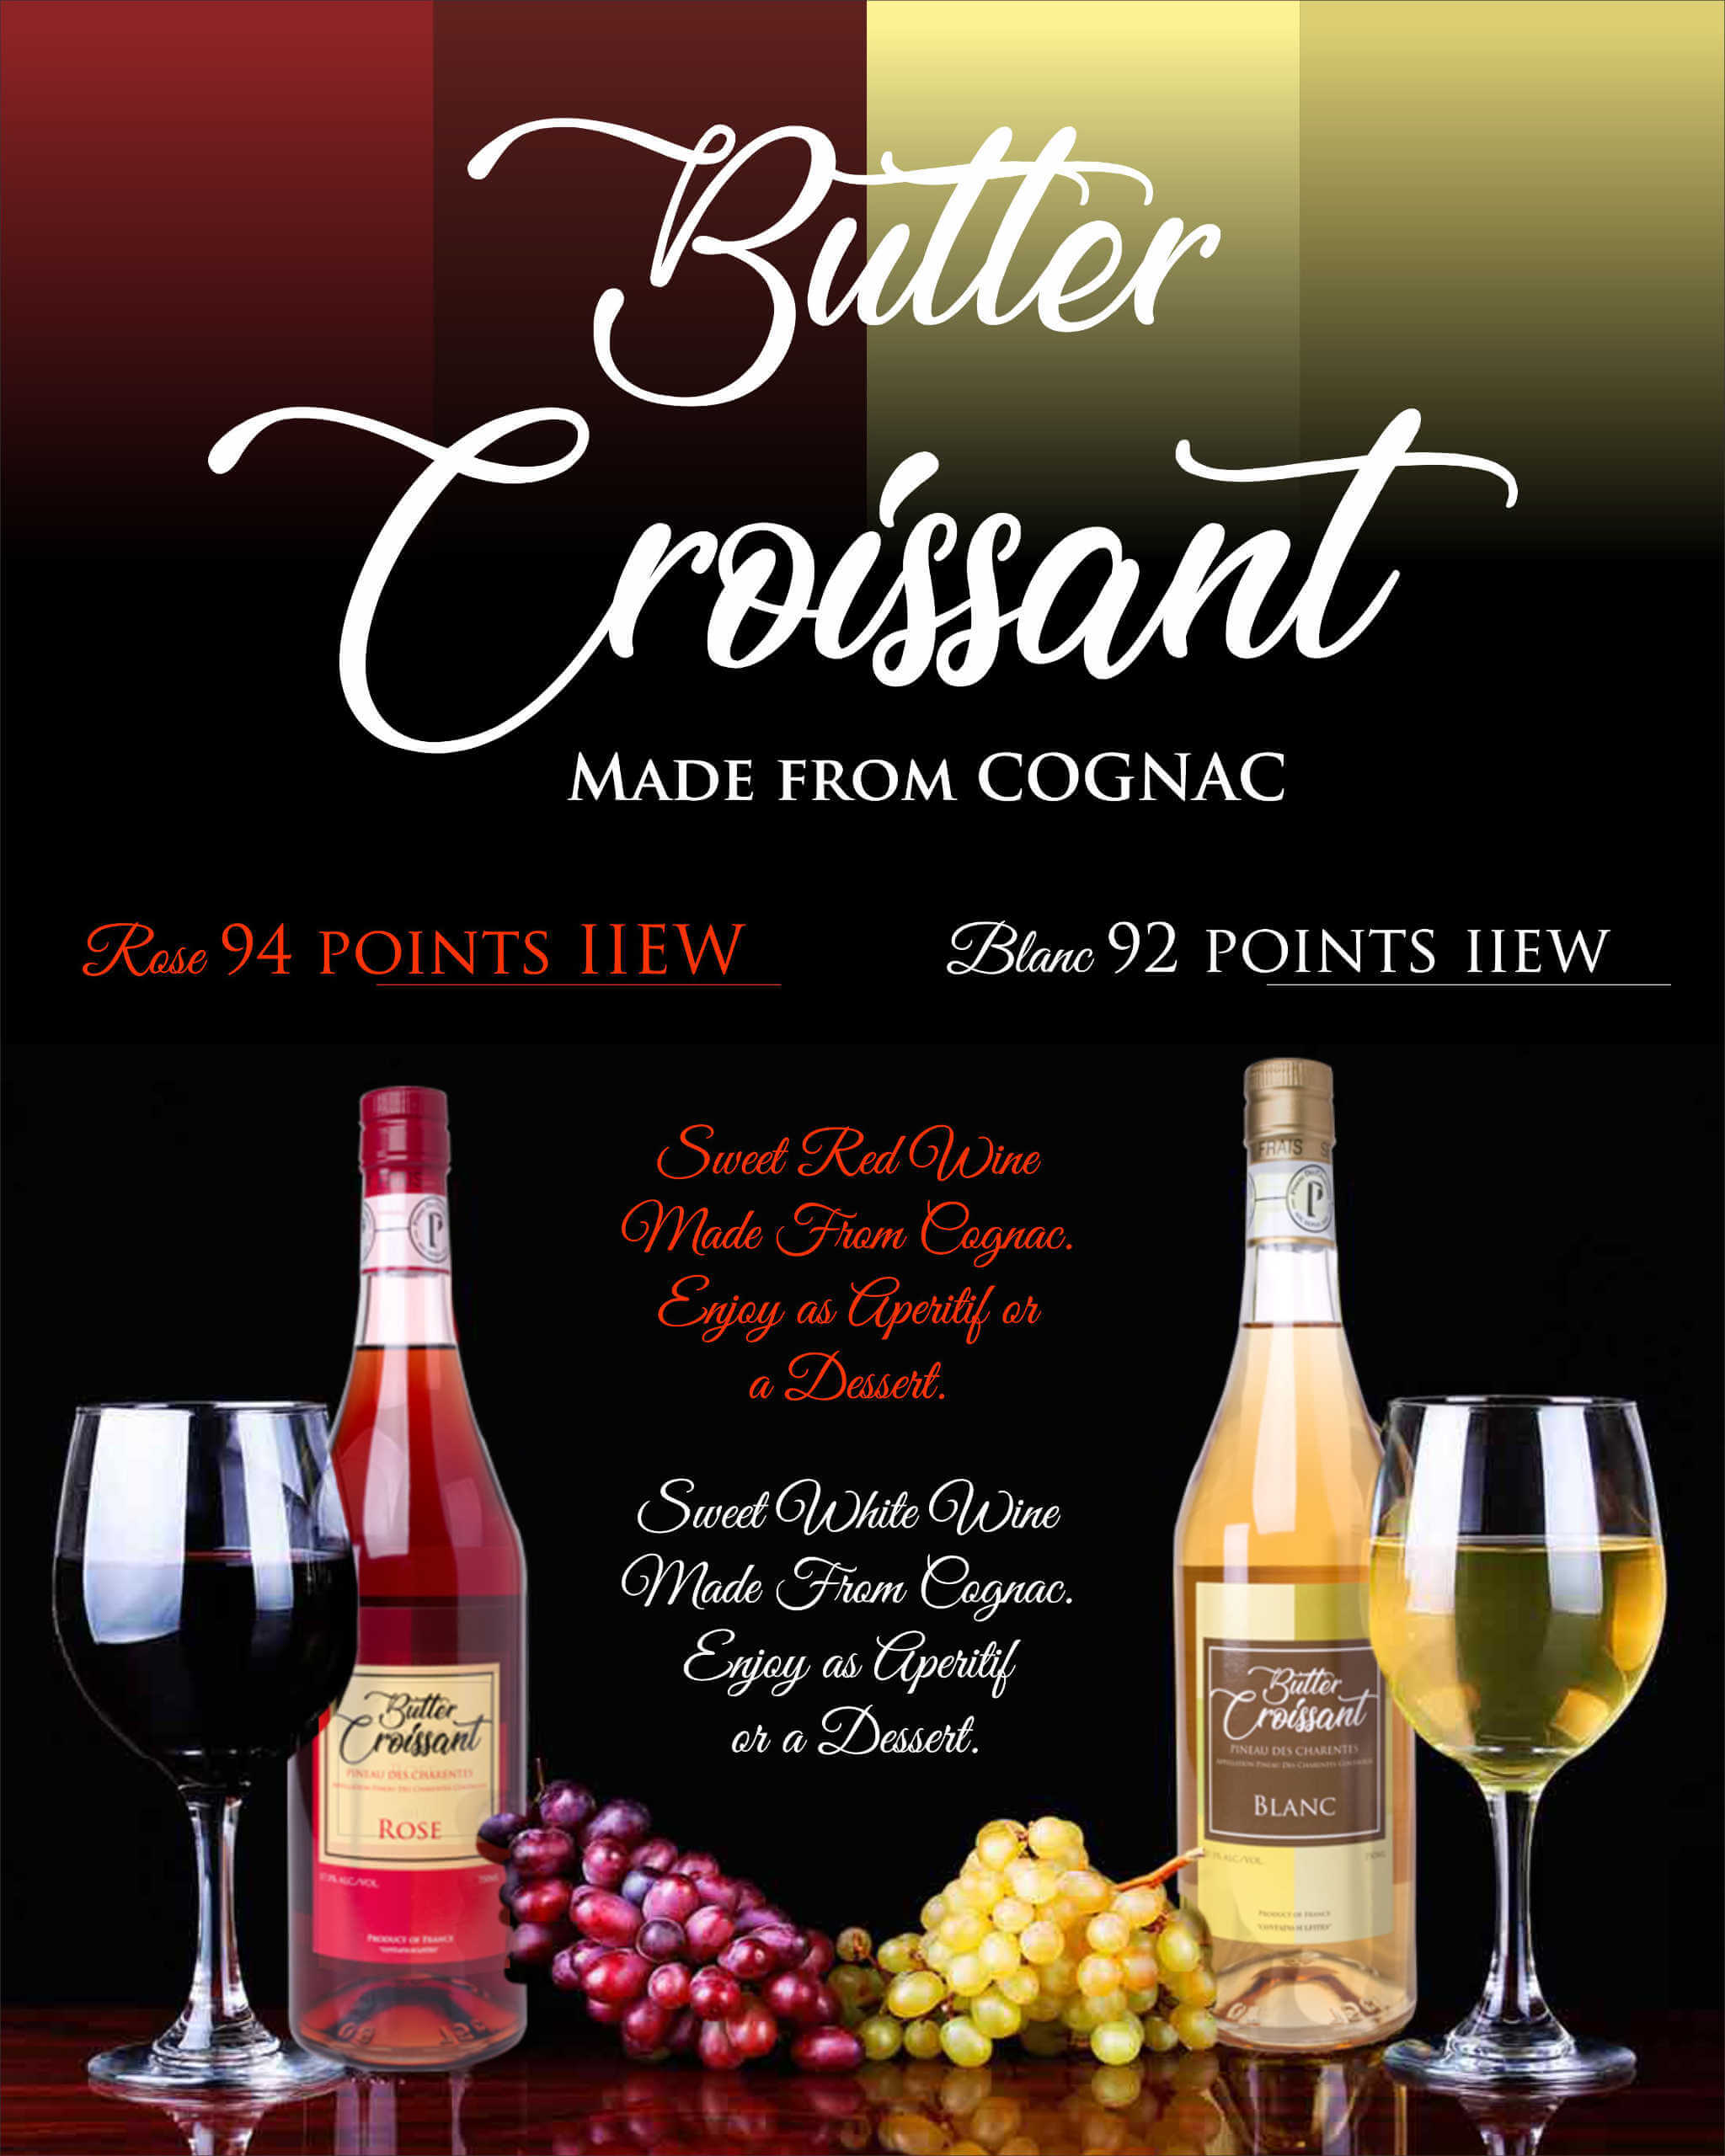 Butter Croissant - Made from Cognac